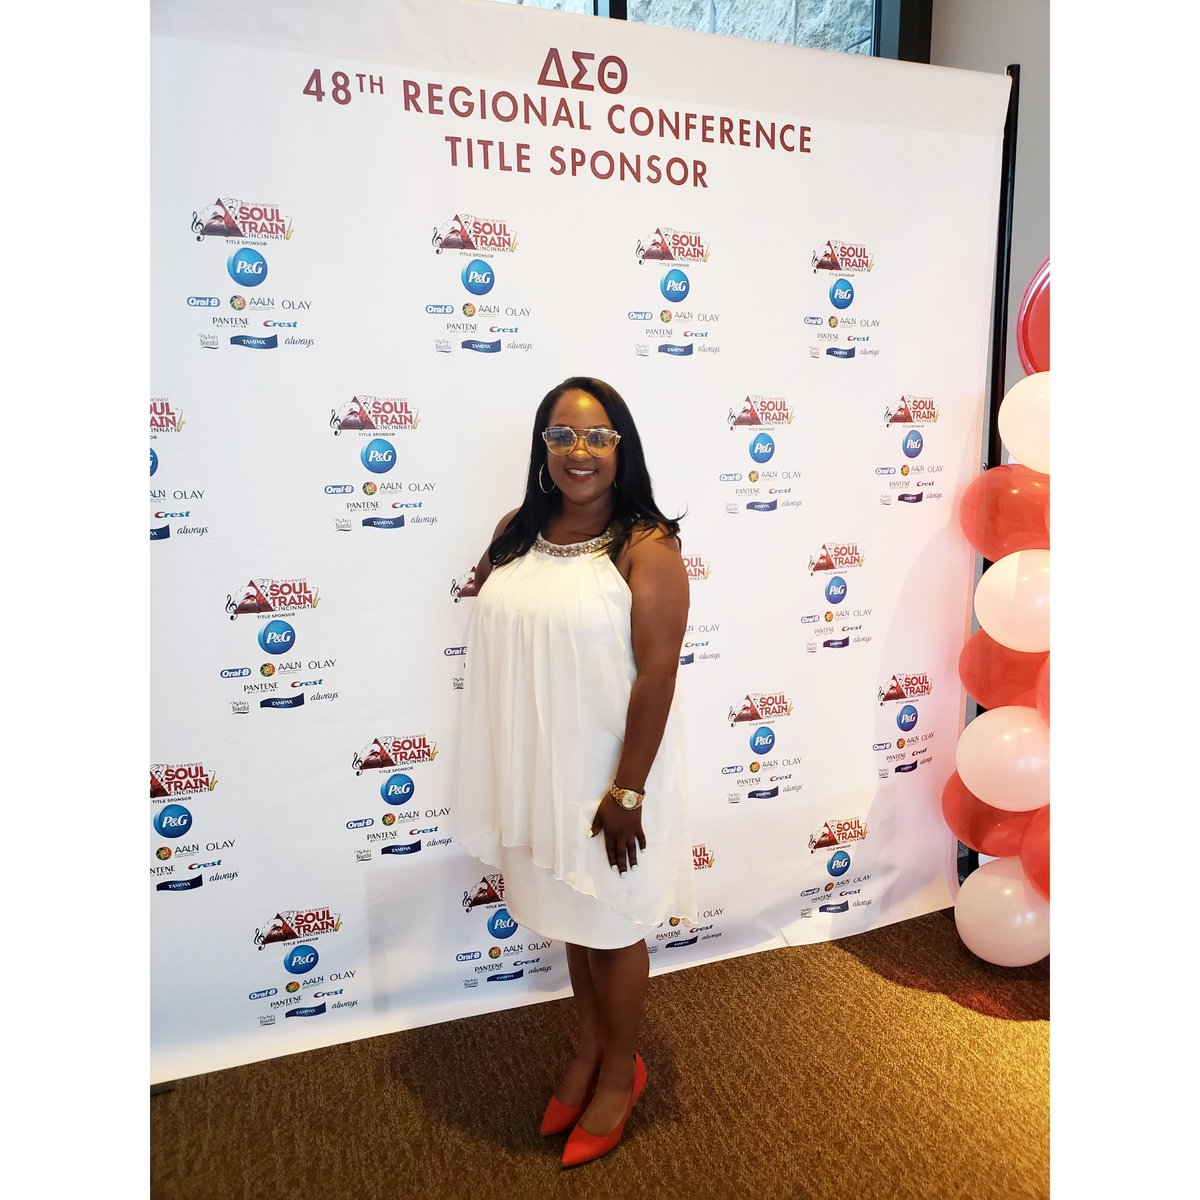 Lizzieg Hashtag On Twitter Pantane Hanging With Vip Sponsors Of The 48th Midwest Regional Conference Delta Sigma Theta Sorority Inc In Cincinnati Ohio